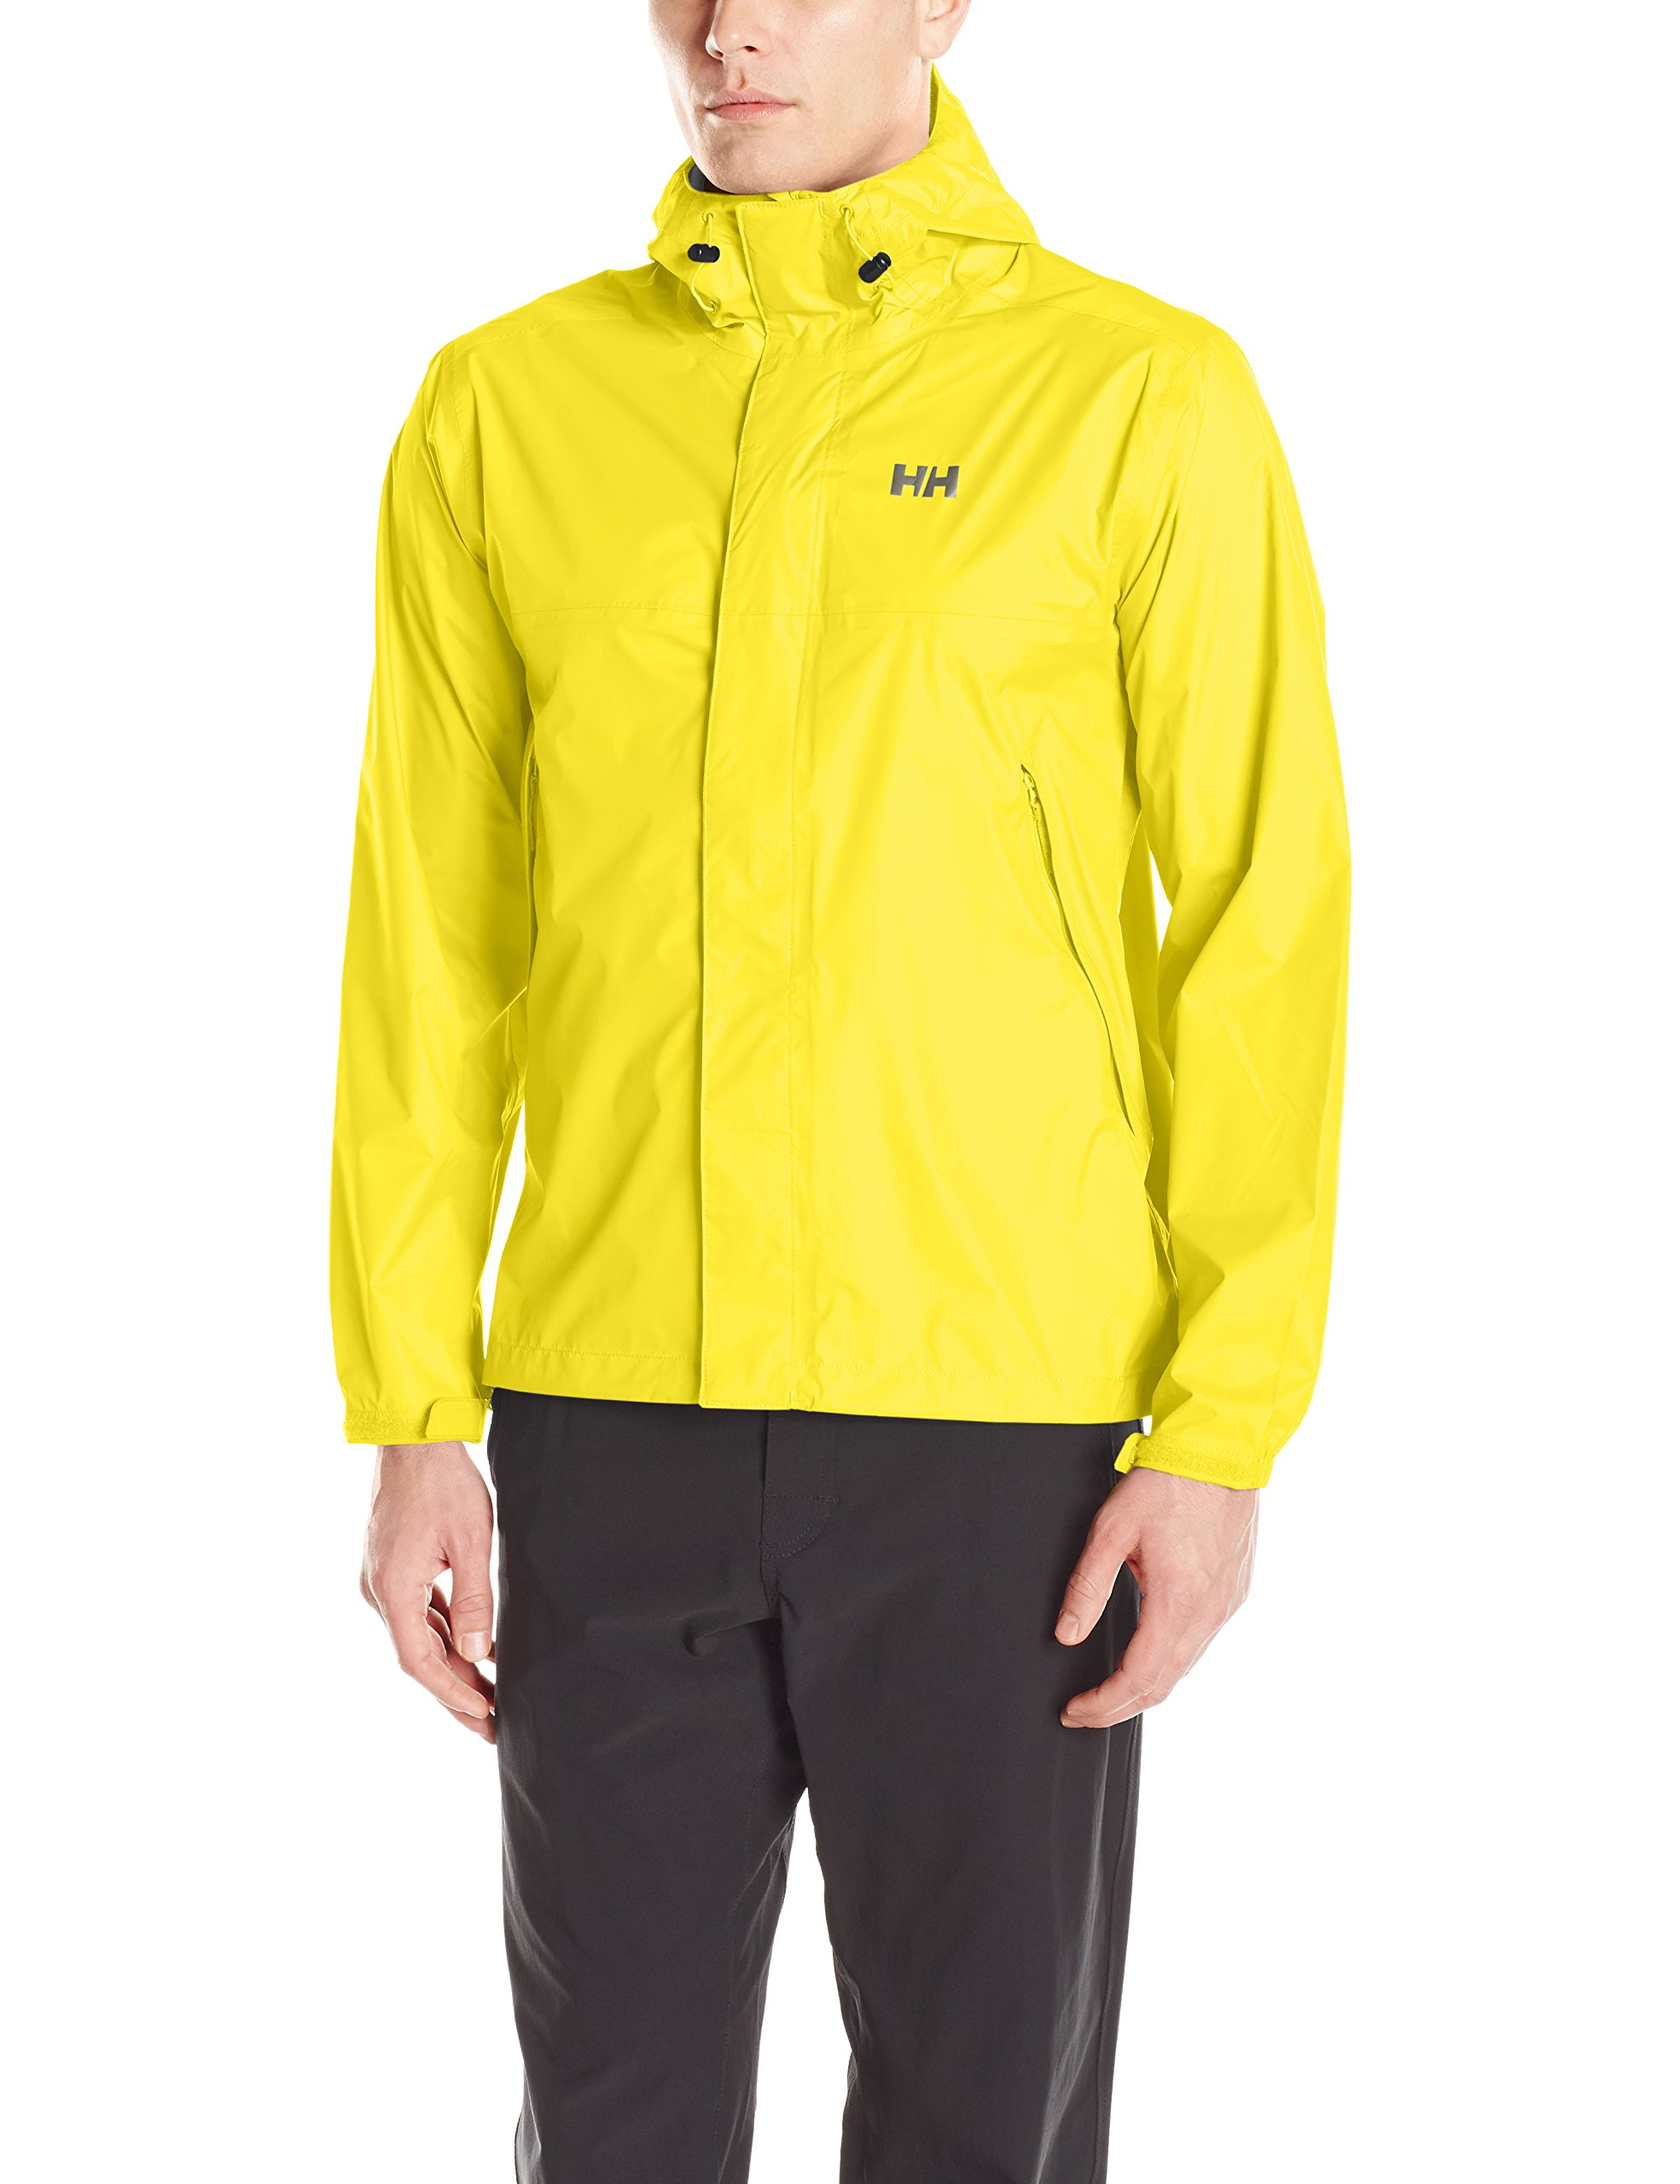 Helly Hansen Men's Loke Waterproof Windproof Breathable Adventure Rain Jacket, 351 Sulphur, Large